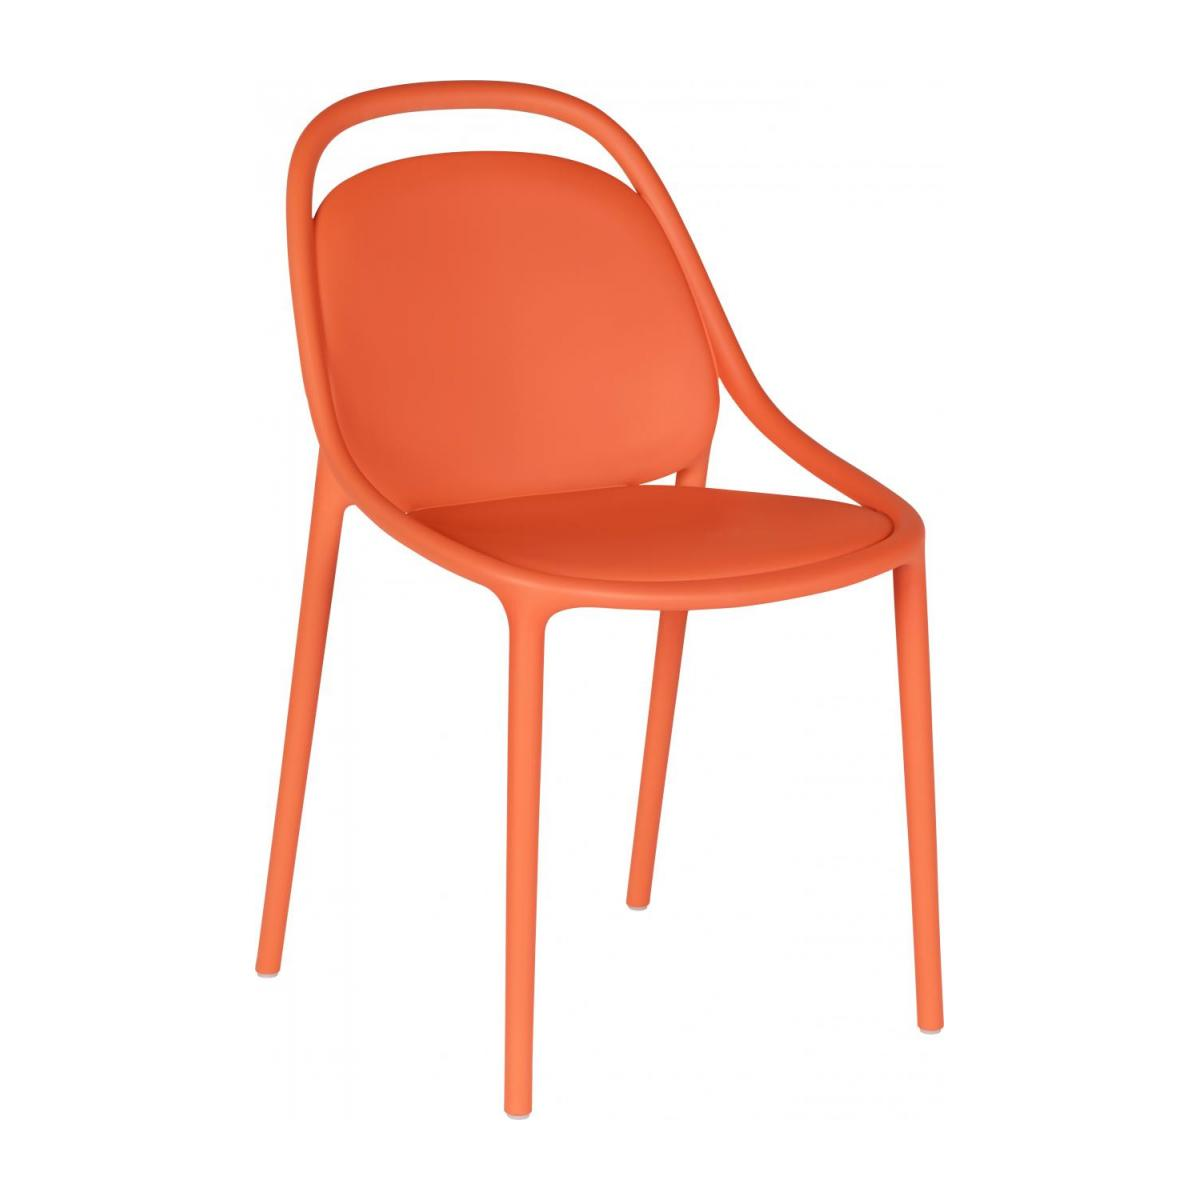 Chaise orange en polypropylène n°1